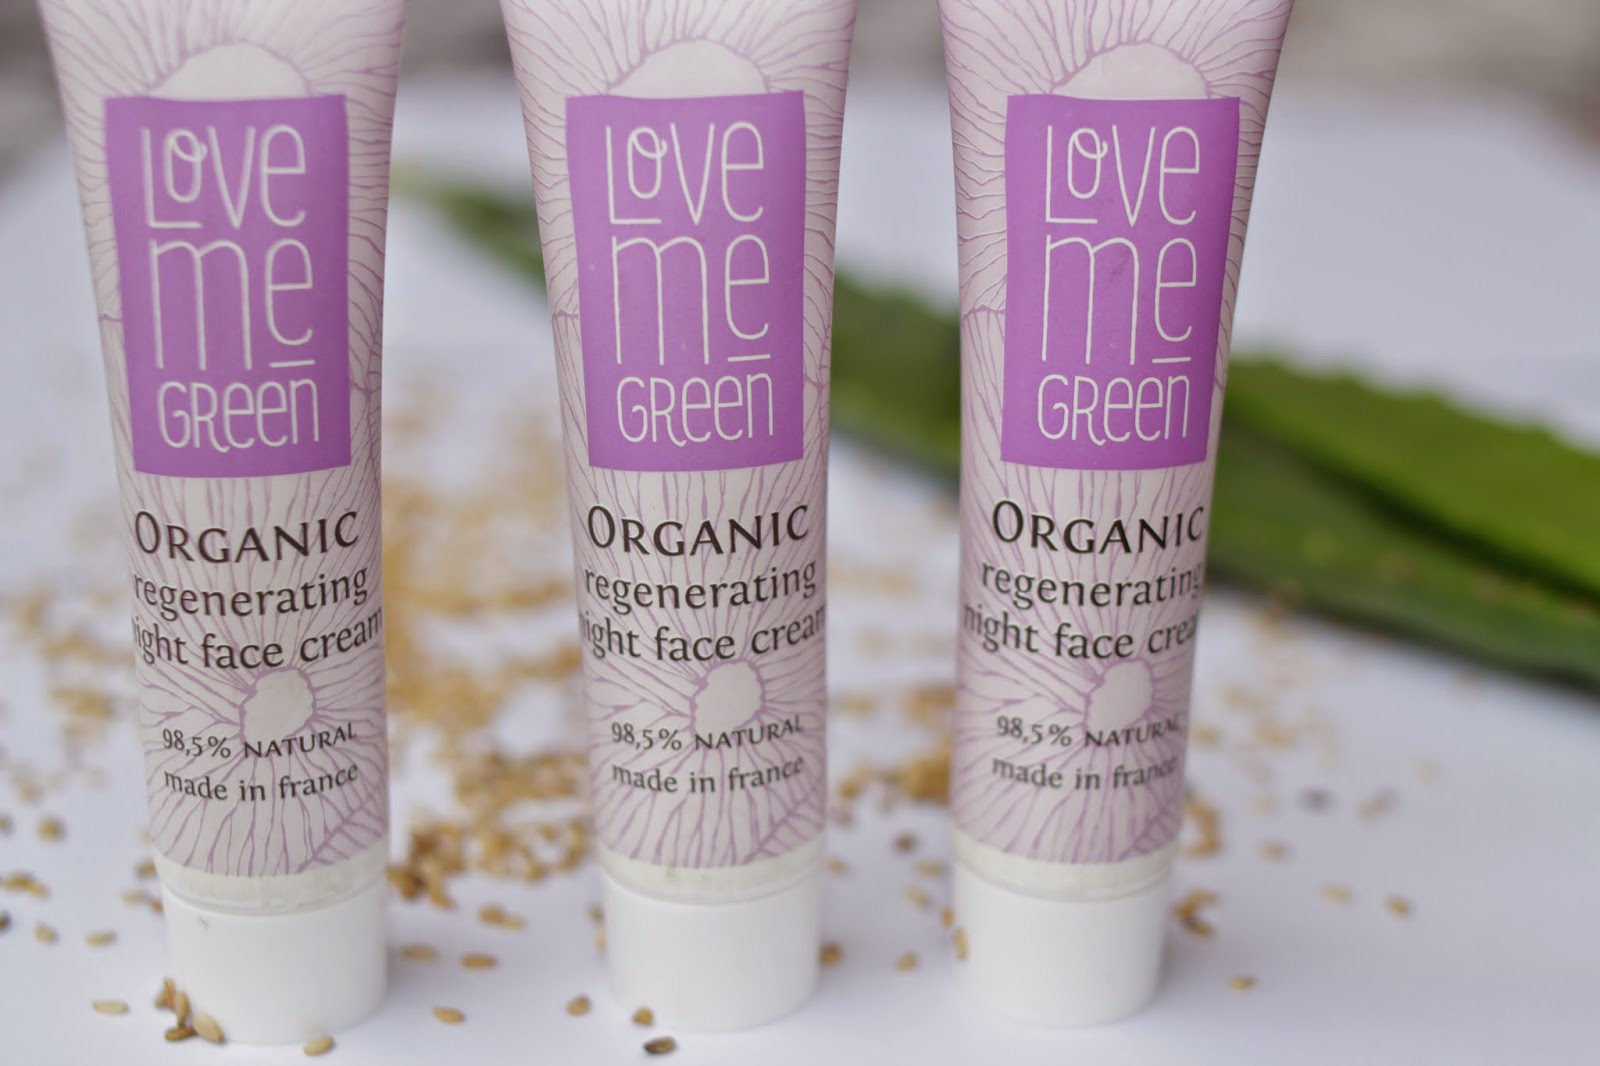 Love me Green Organic Regeneration Night face Cream 15ml Proben